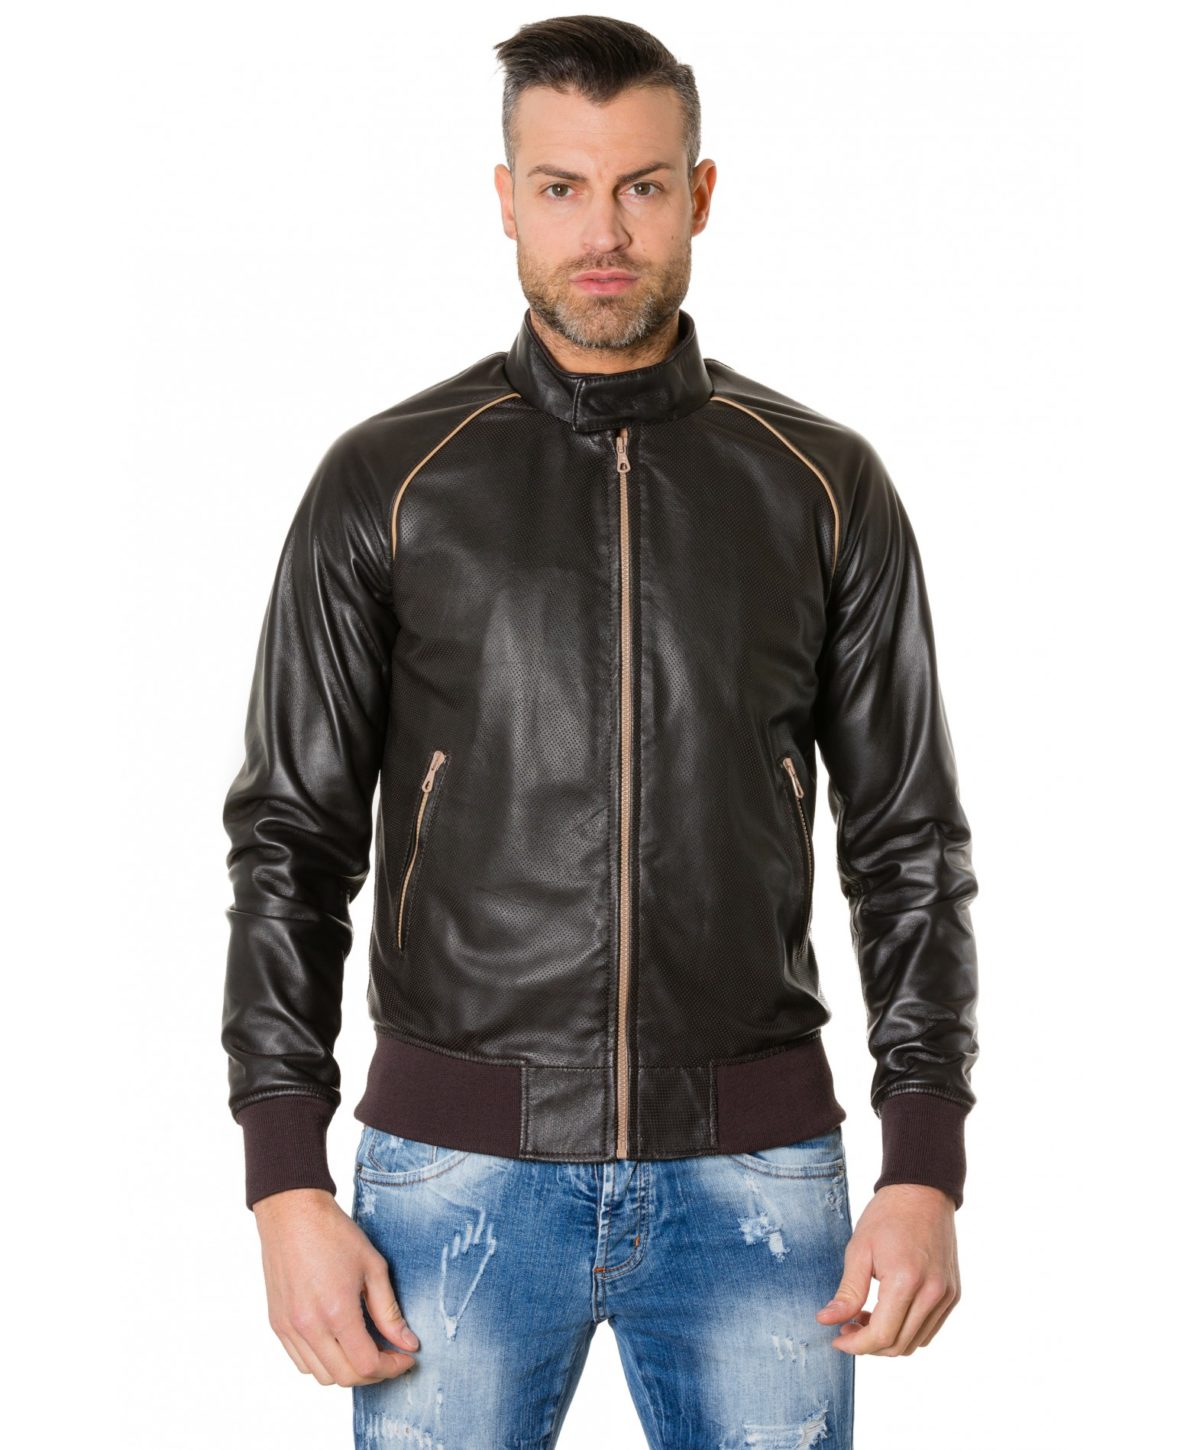 1066-dark-brown-colour-perfored-leather-bomber-jacket-smooth-aspect